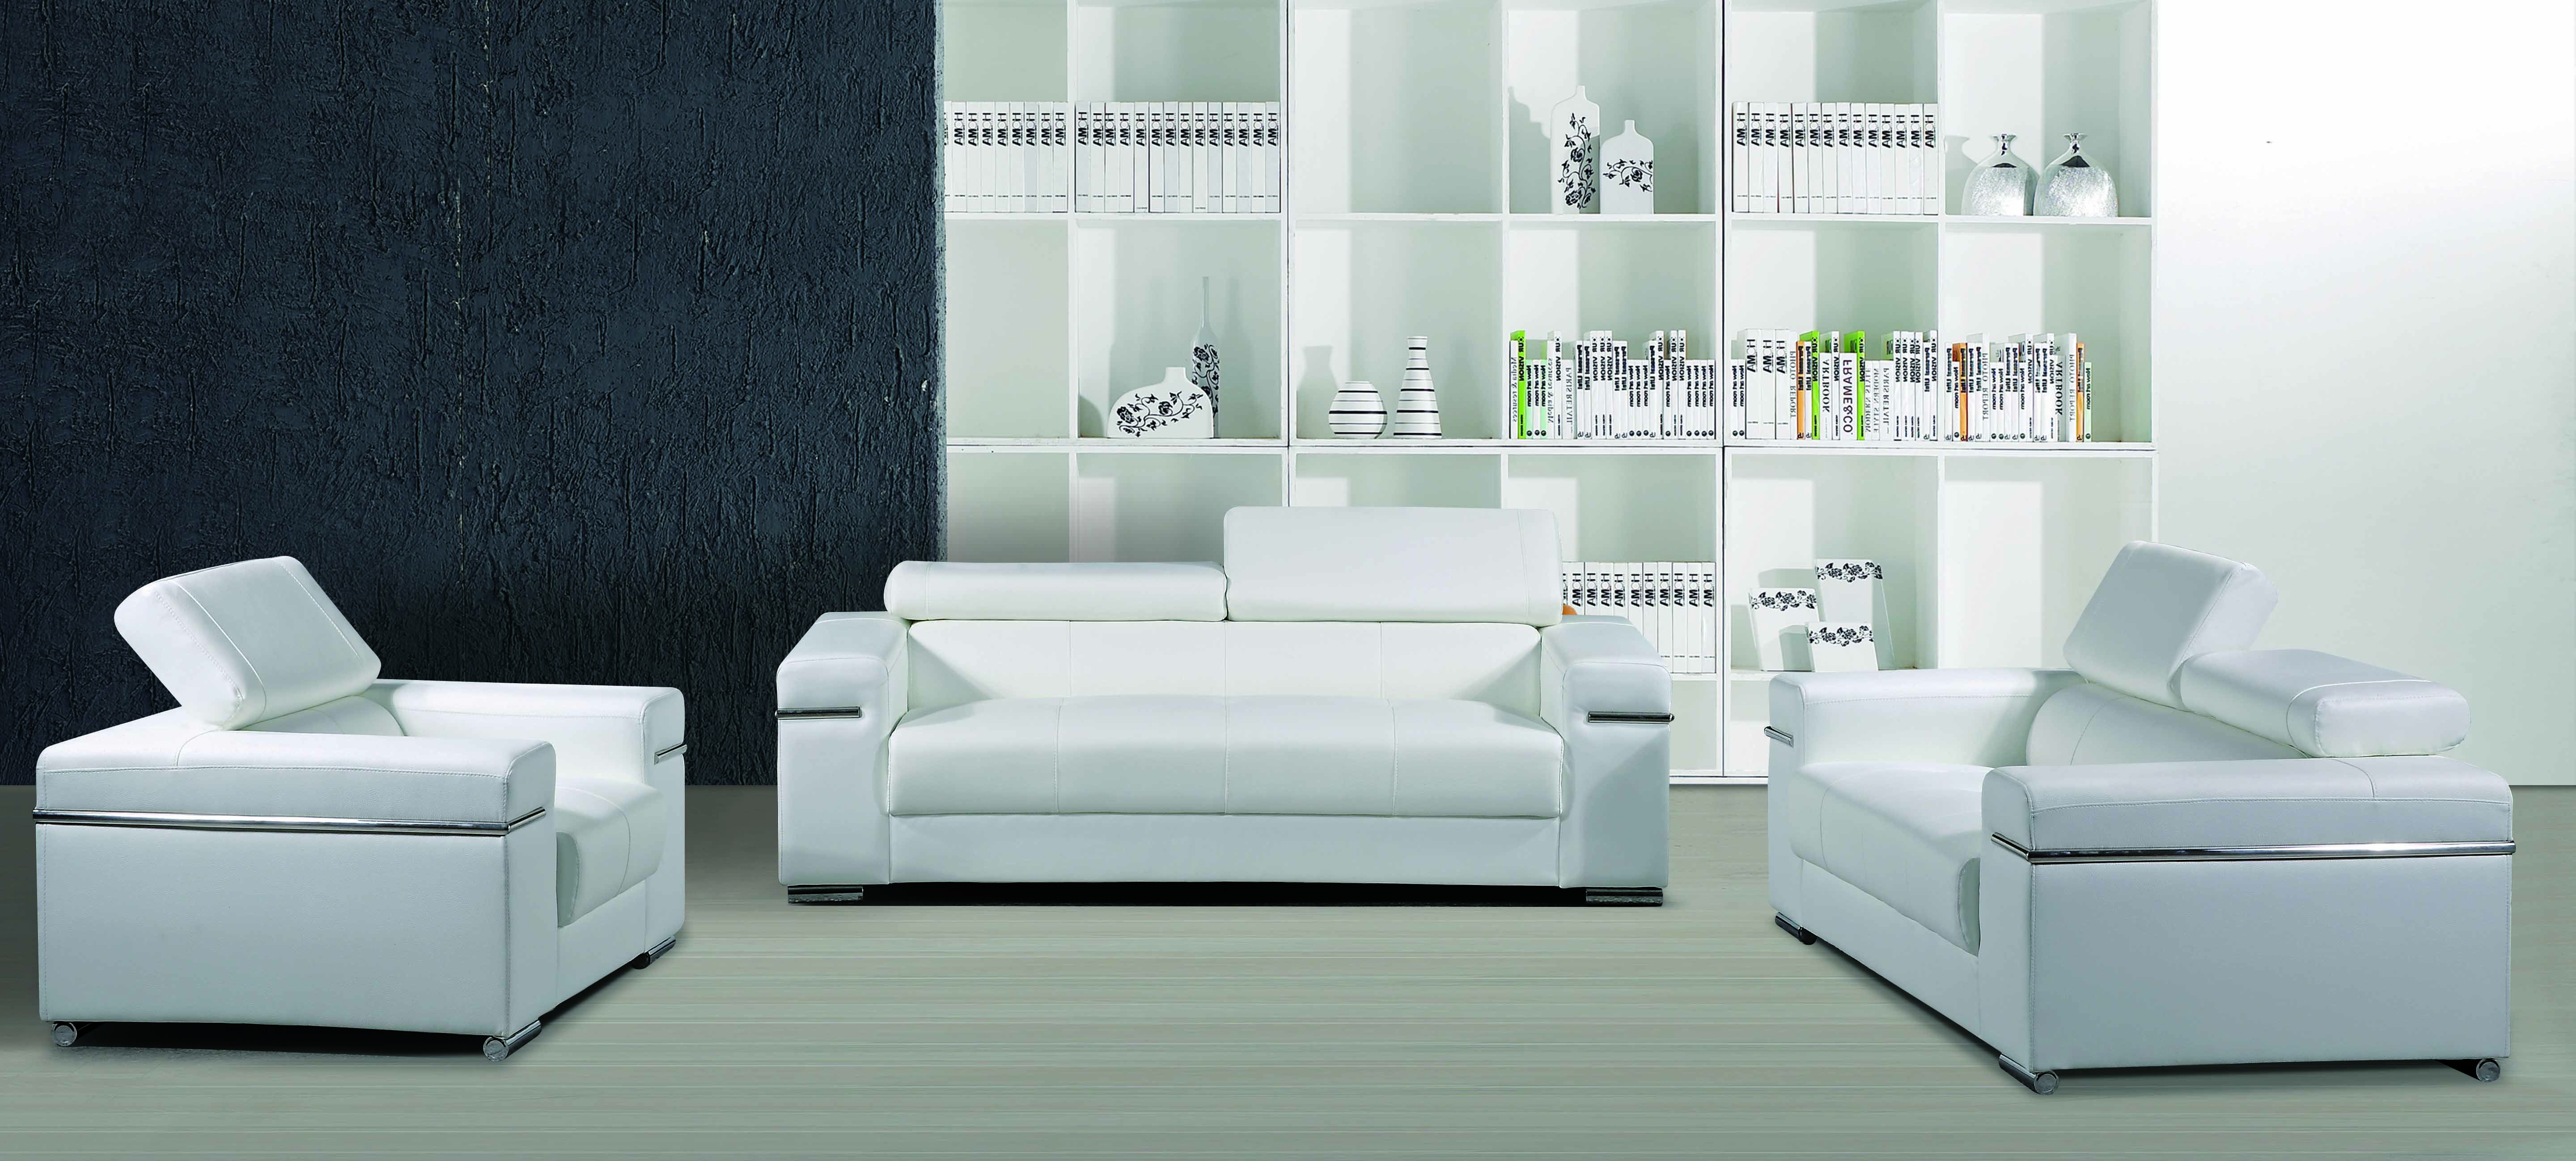 leather sofa with 1 2 3 usa style white and black series modern rh pinterest com